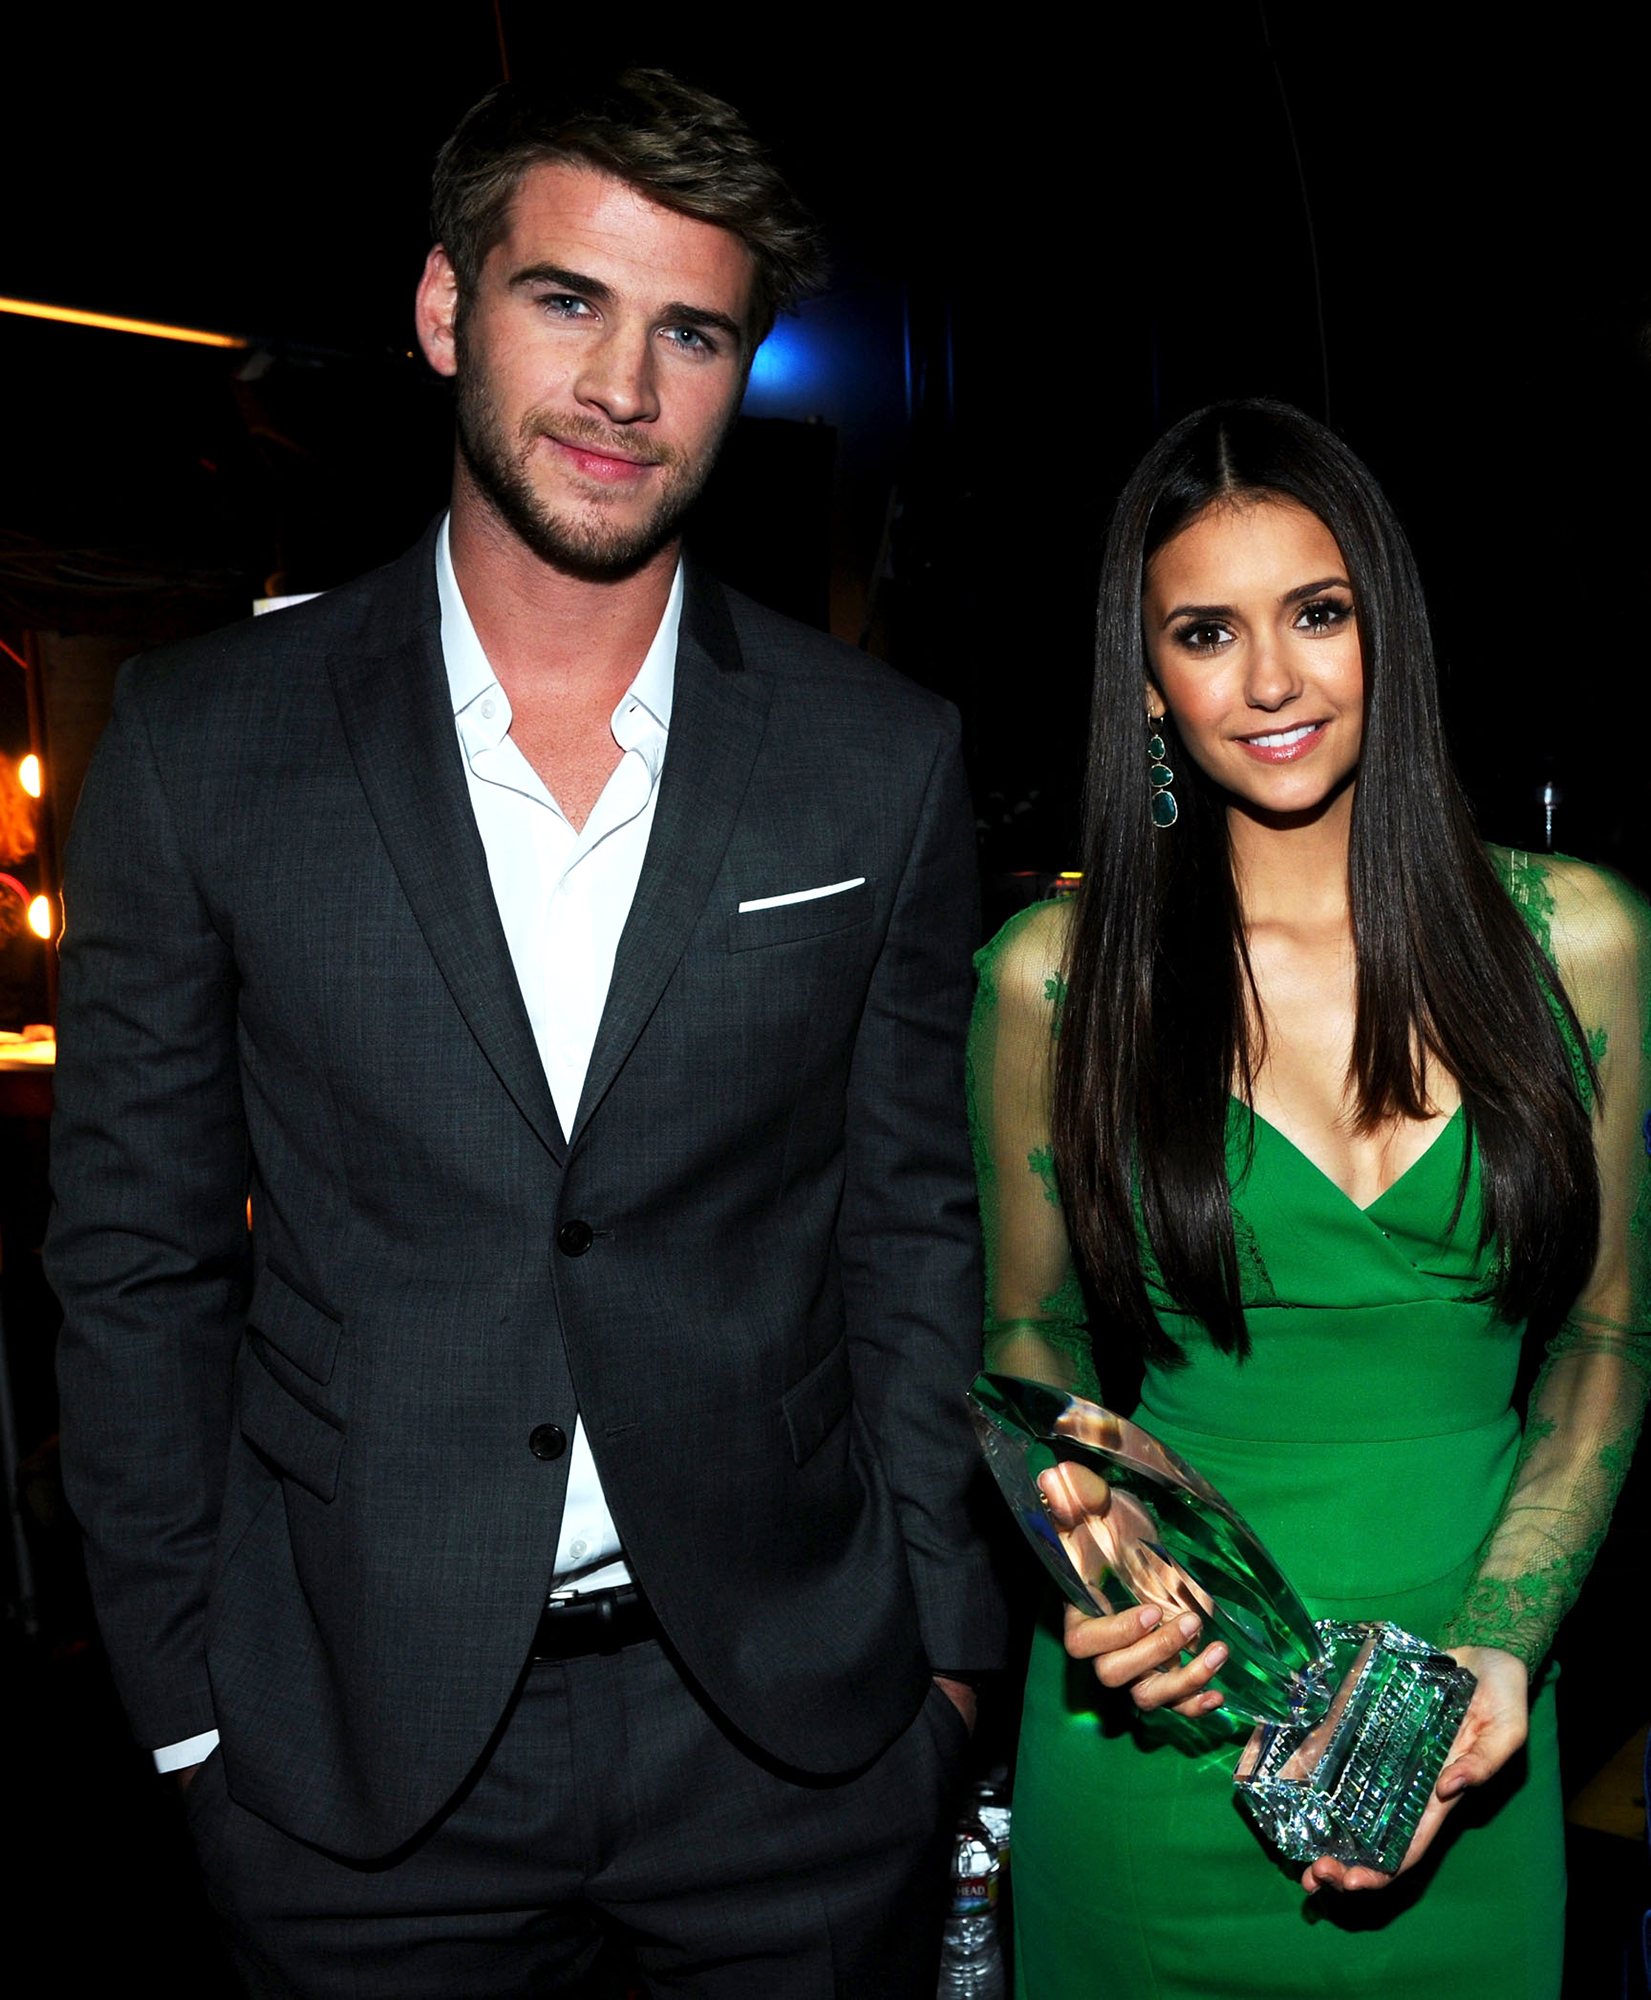 Liam hemsworth dating warning signs youre dating a loser